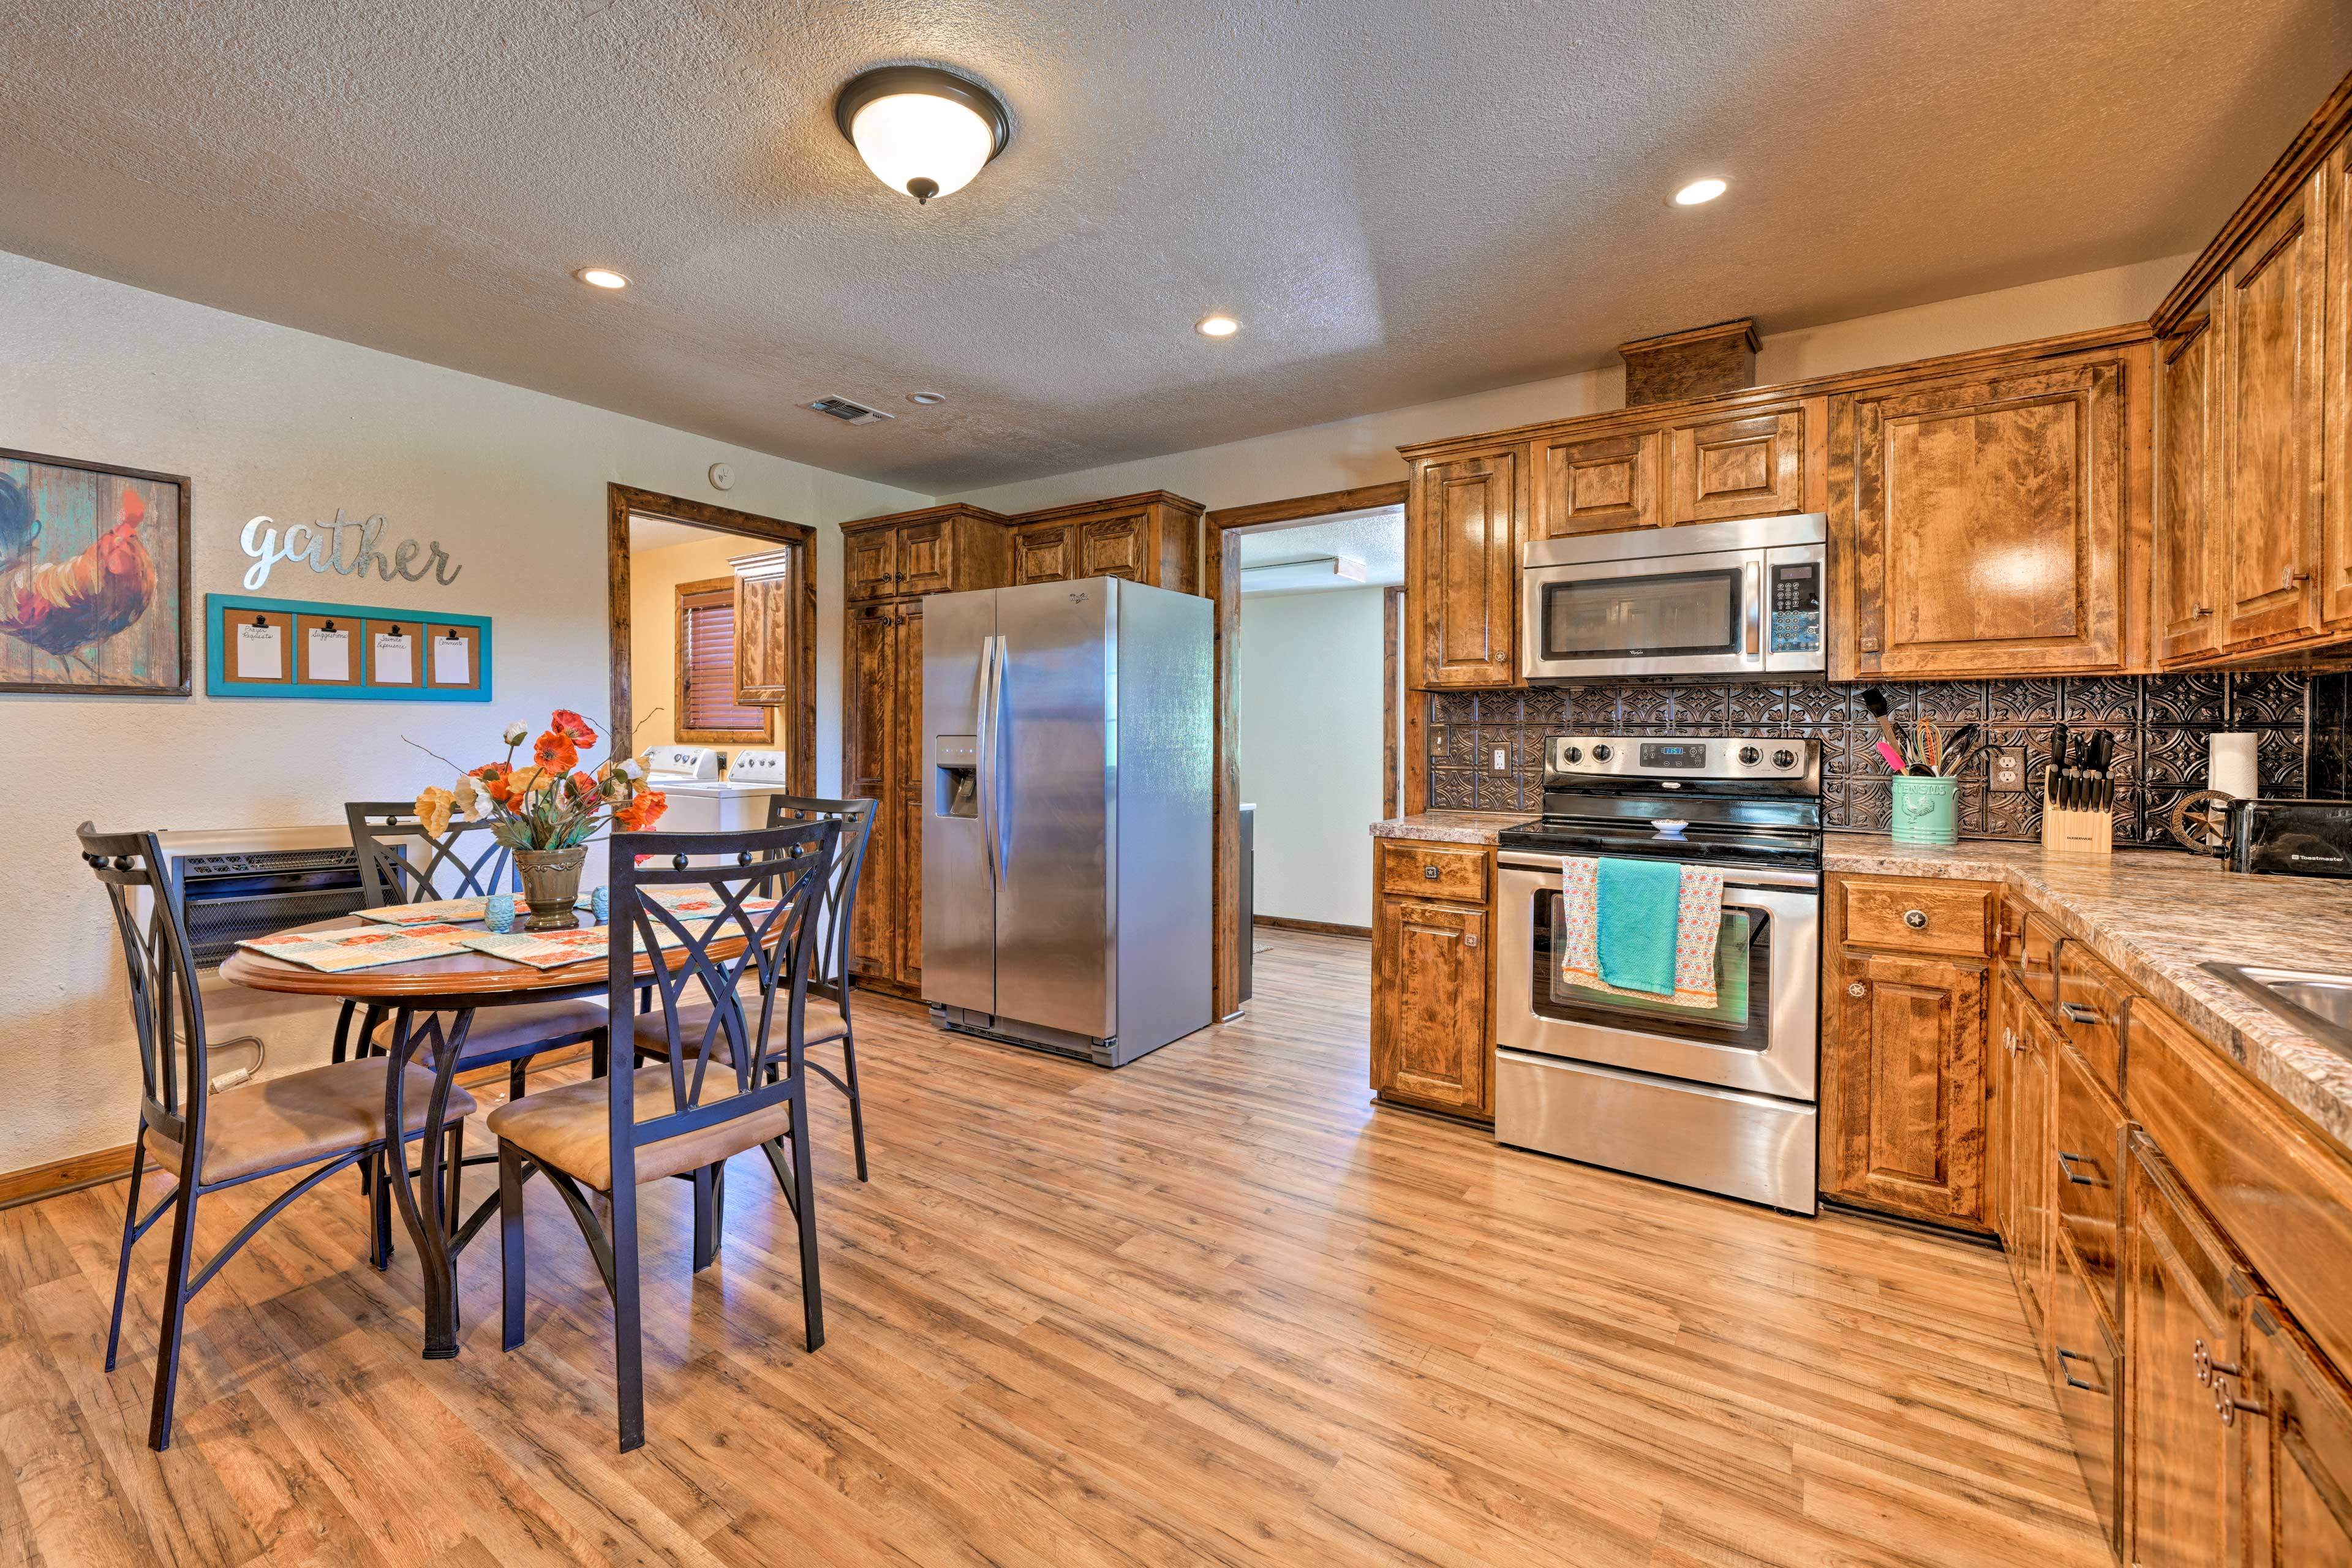 Hardwood floors line the roomy fully equipped kitchen.